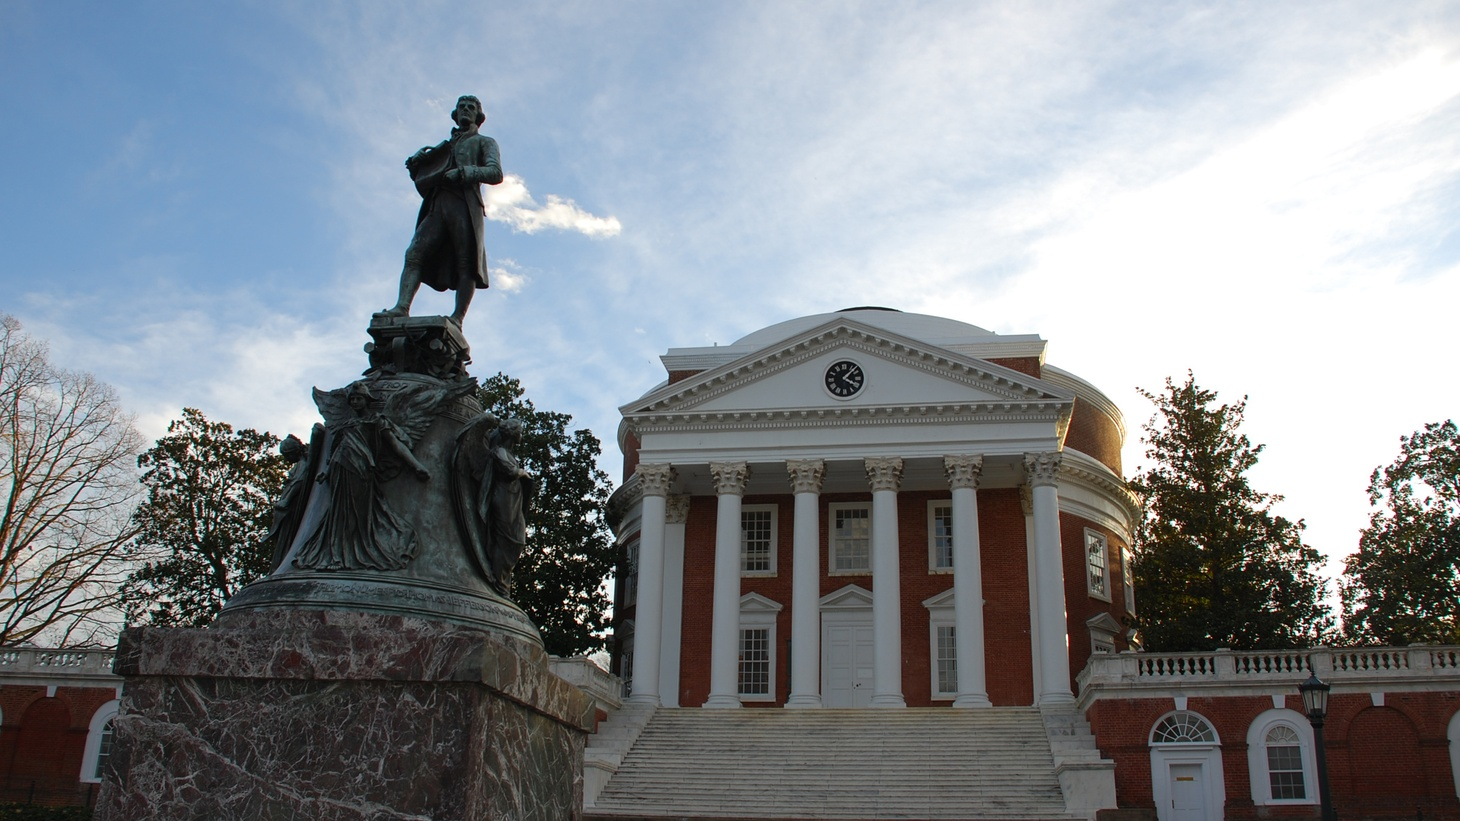 Last November, Rolling Stone printed a shocking story of a gang rape at the University of Virginia. A new report by the Columbia Journalism Review takes the reporter and magazine to task for failing to follow basic reporting practices.